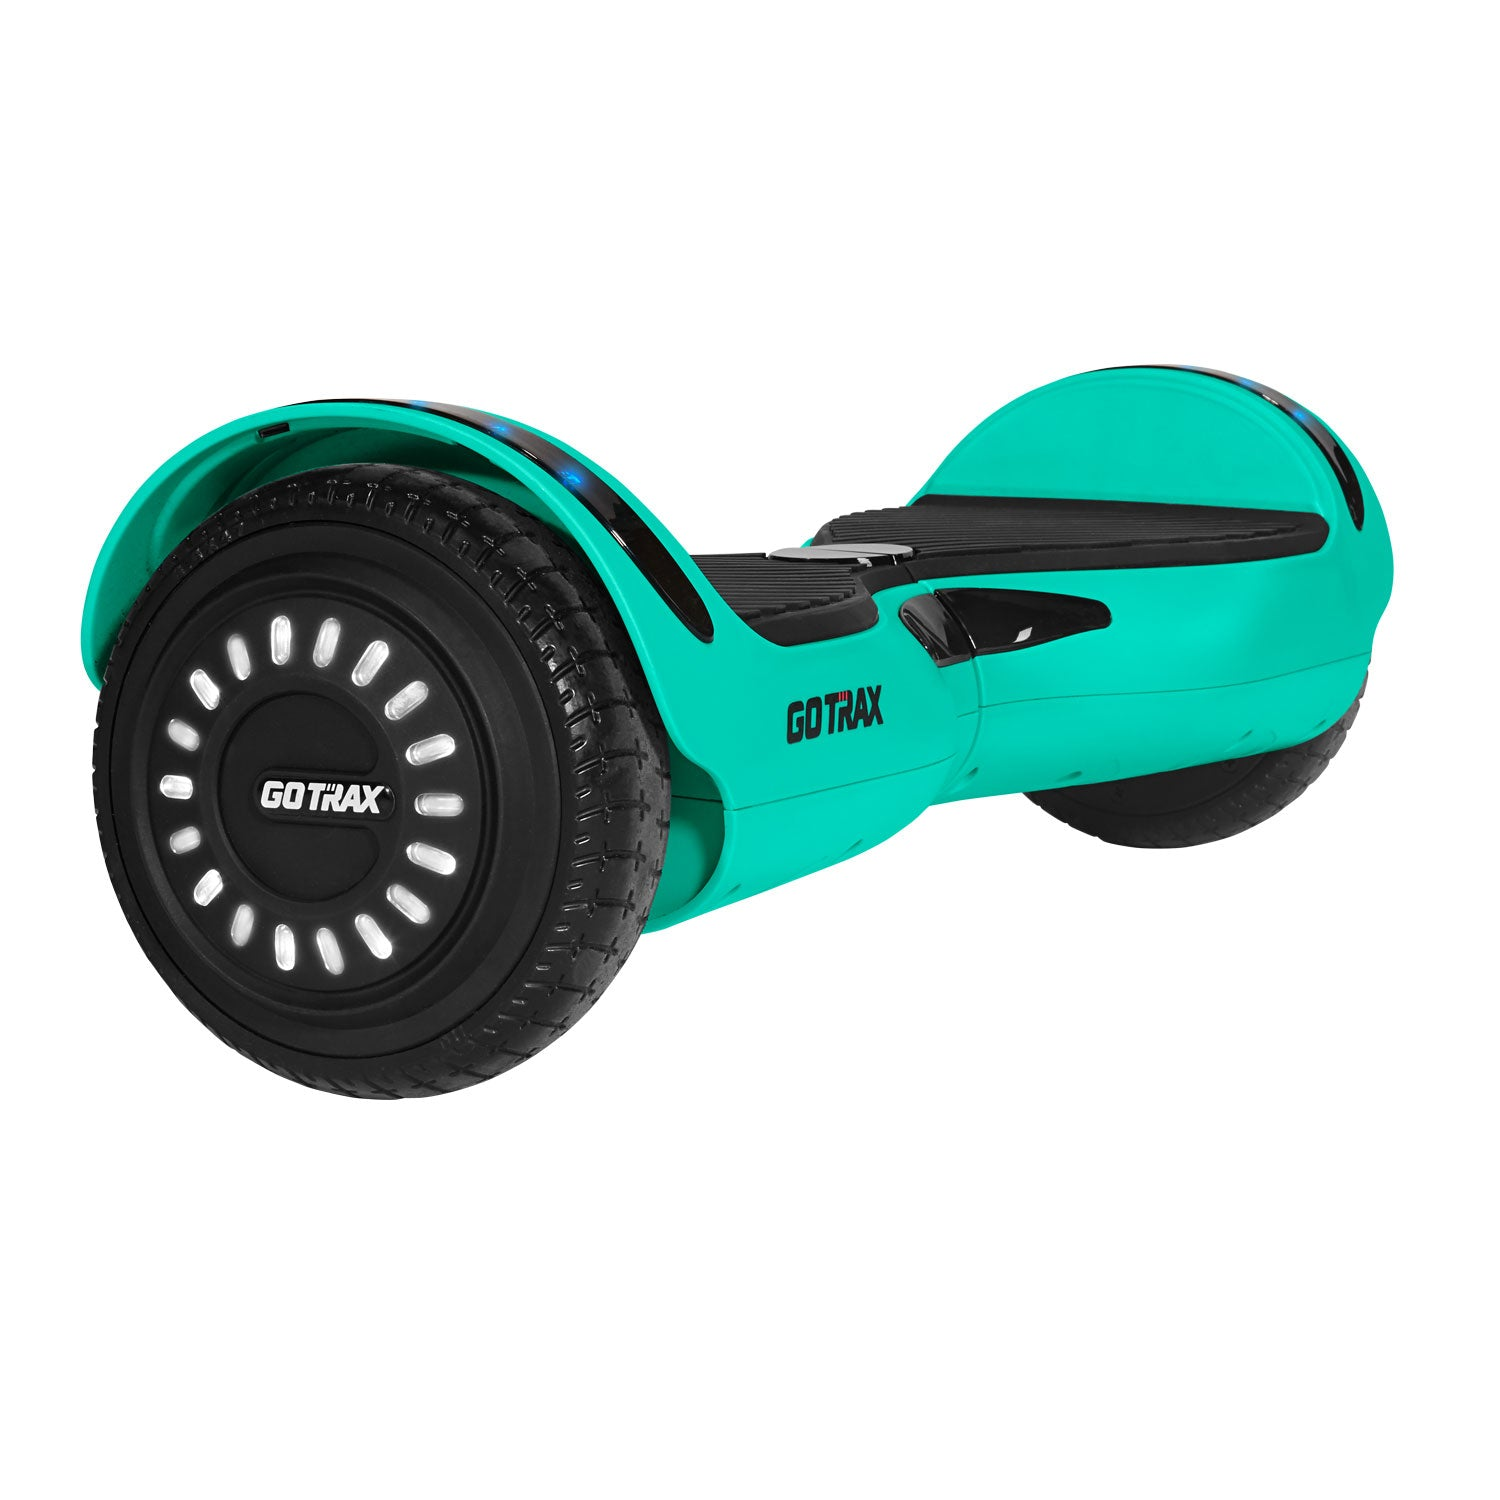 Teal hoverfly E2 bluetooth hoverboard main image